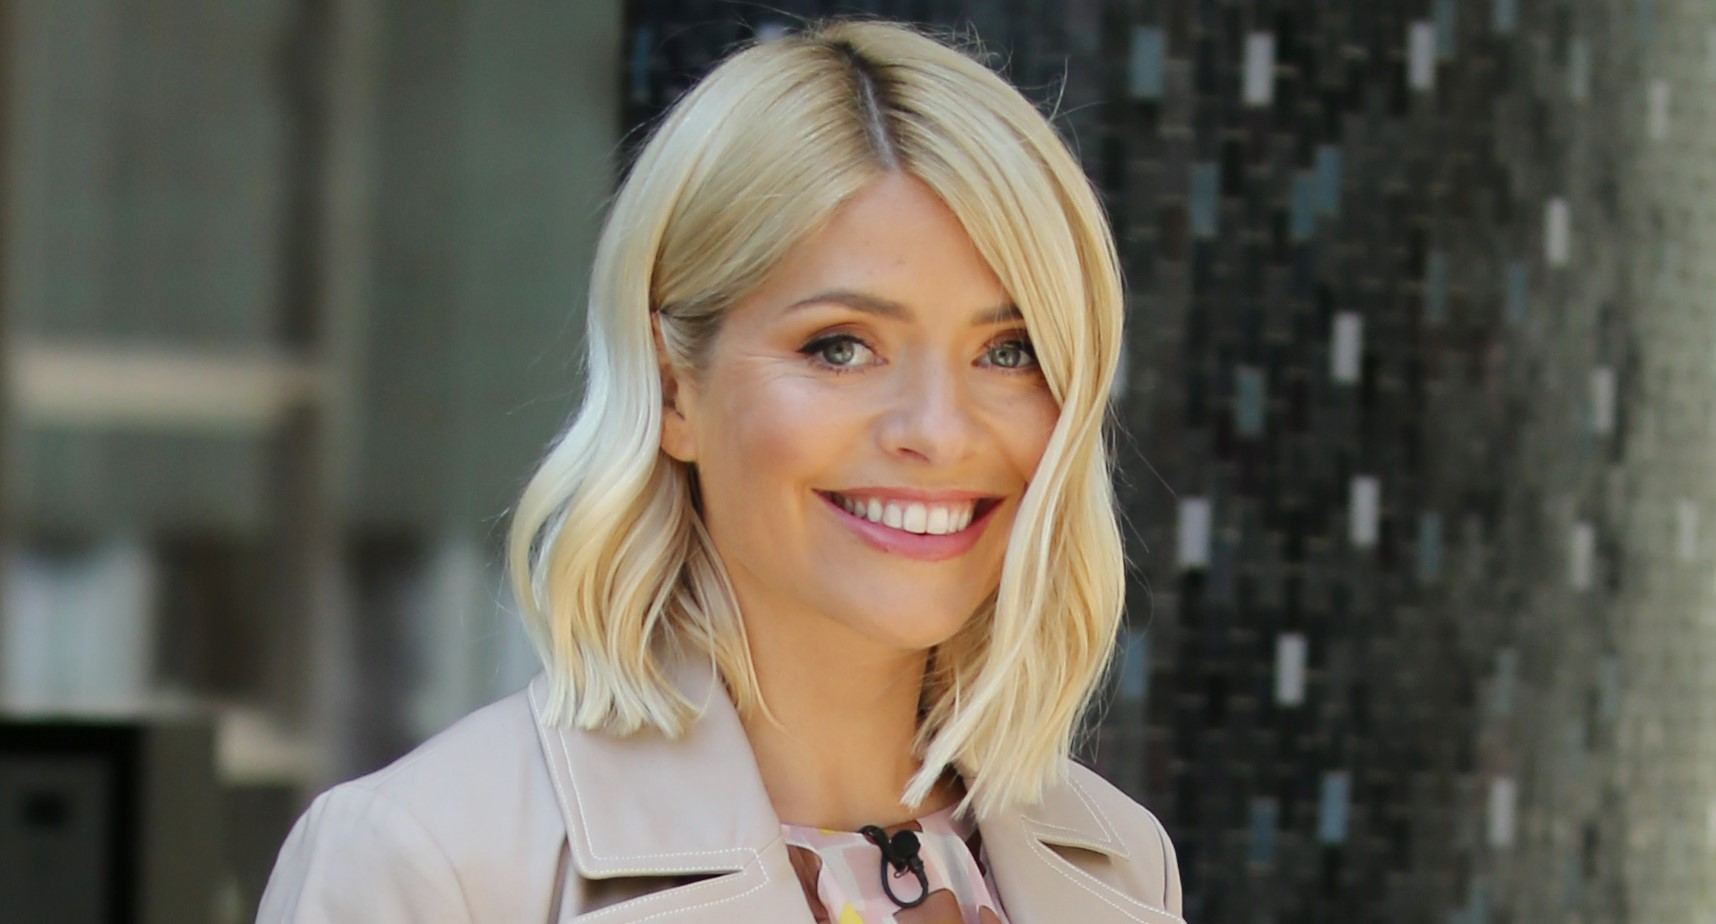 Holly Willoughby celebrates 12 years of being happily married